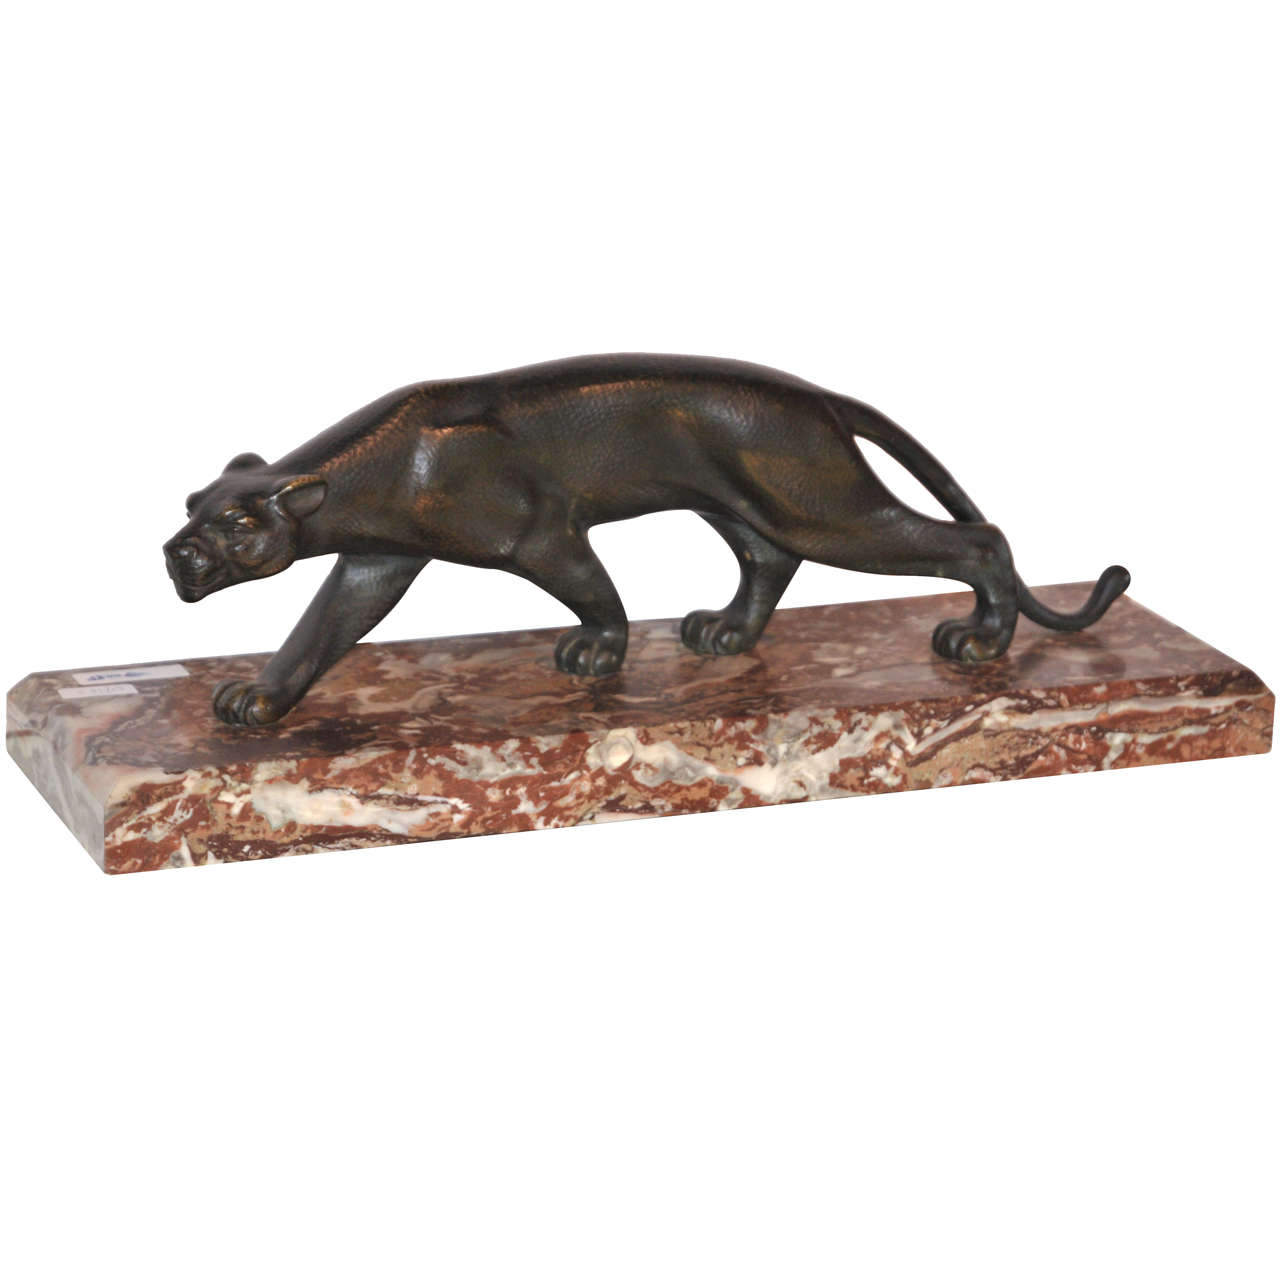 1930s Sculpture of a Striding Panther by S. Melani